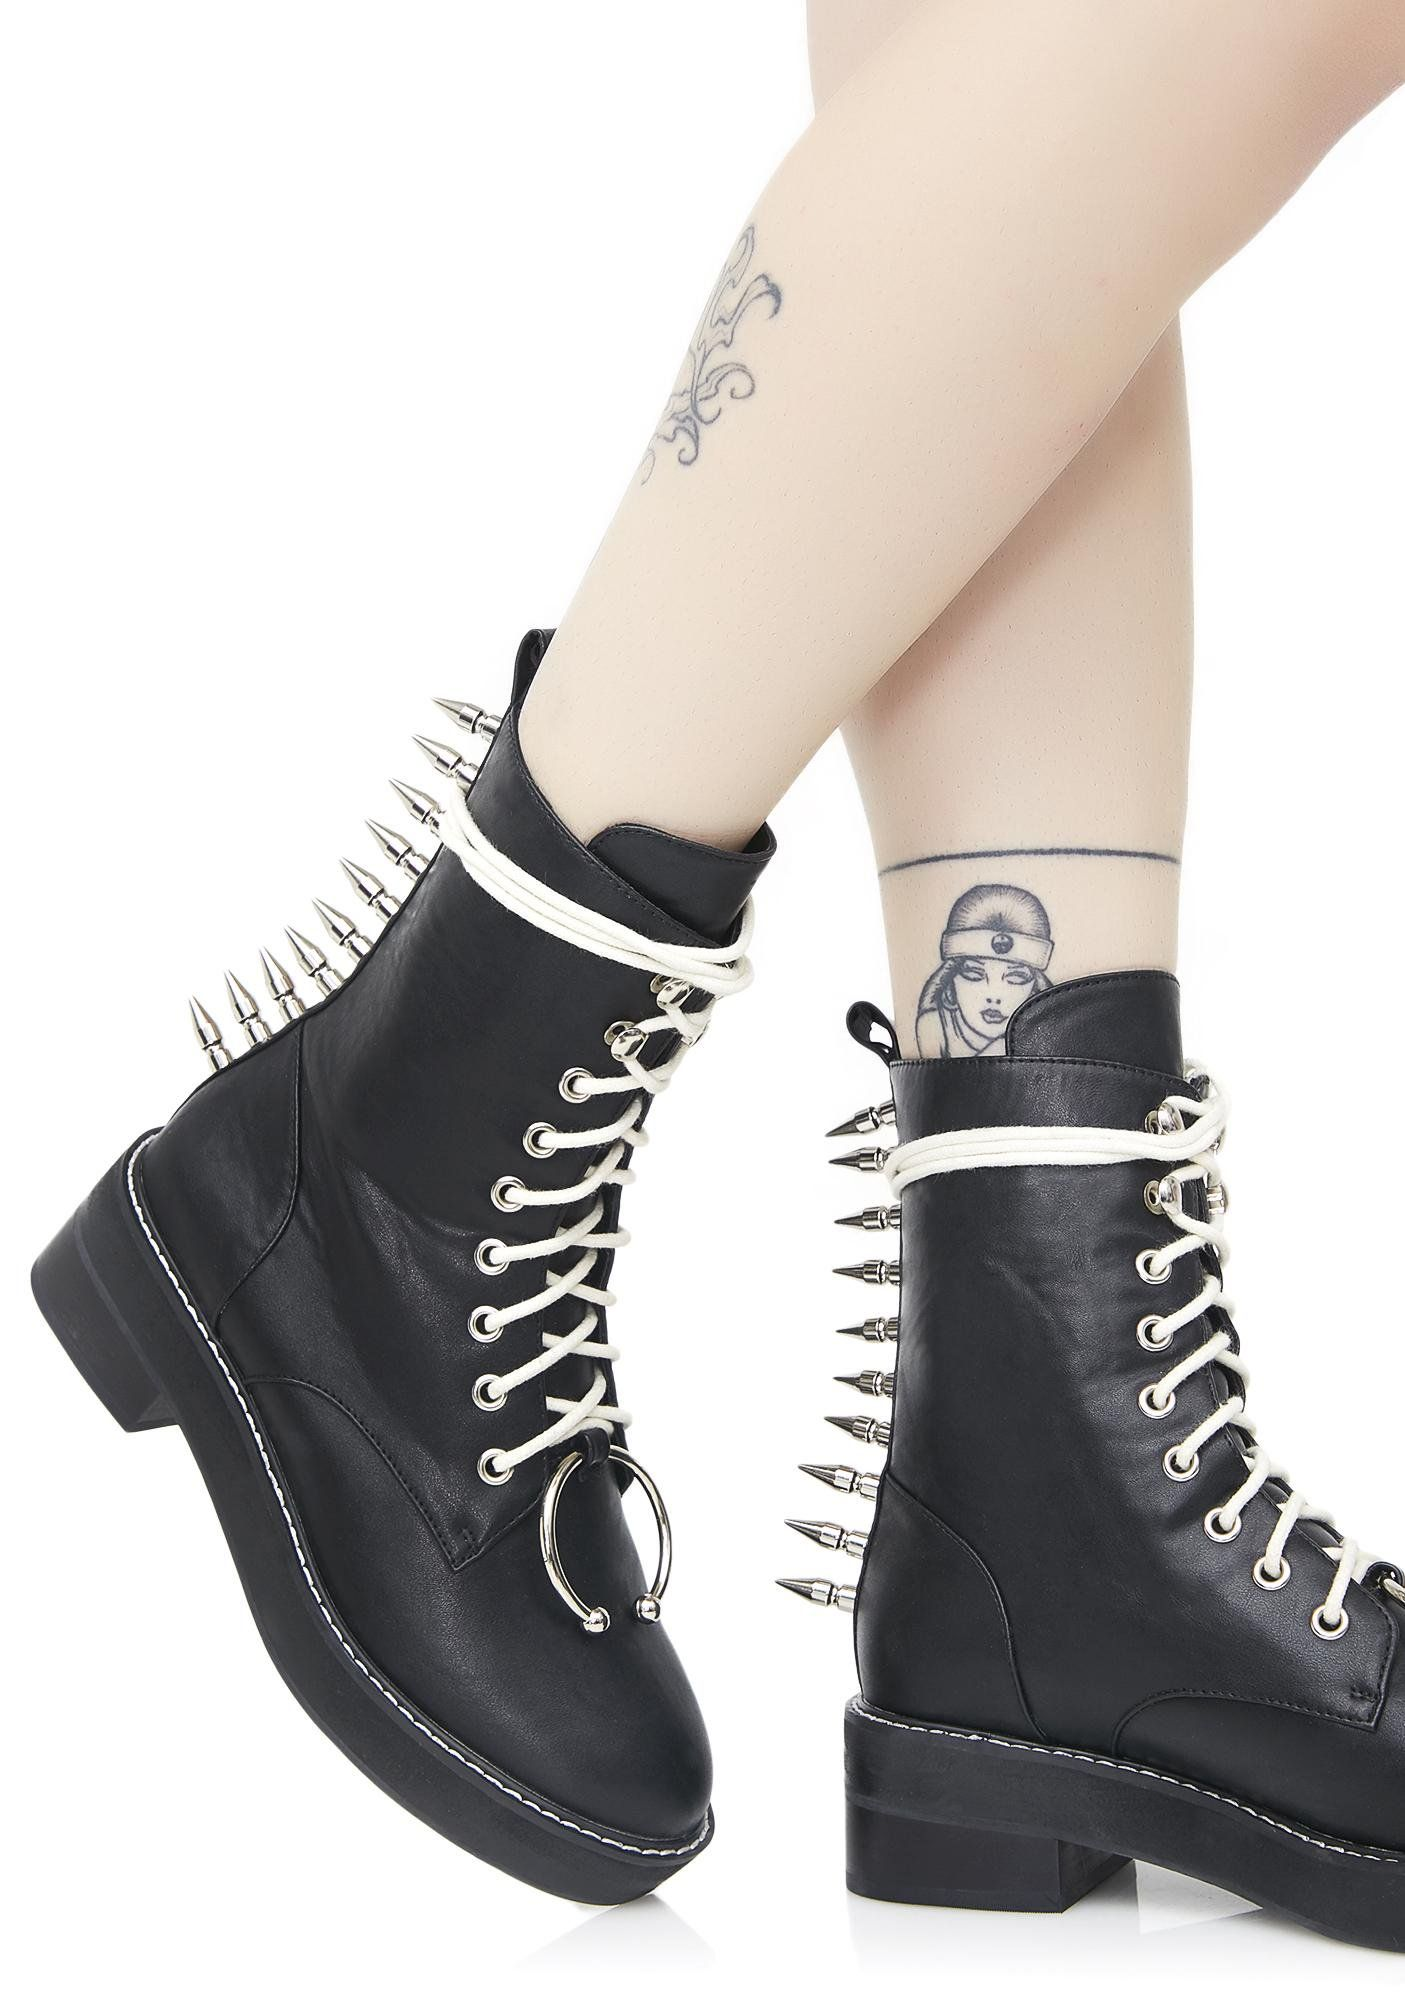 Spikestrip Combat Boots | Lace up